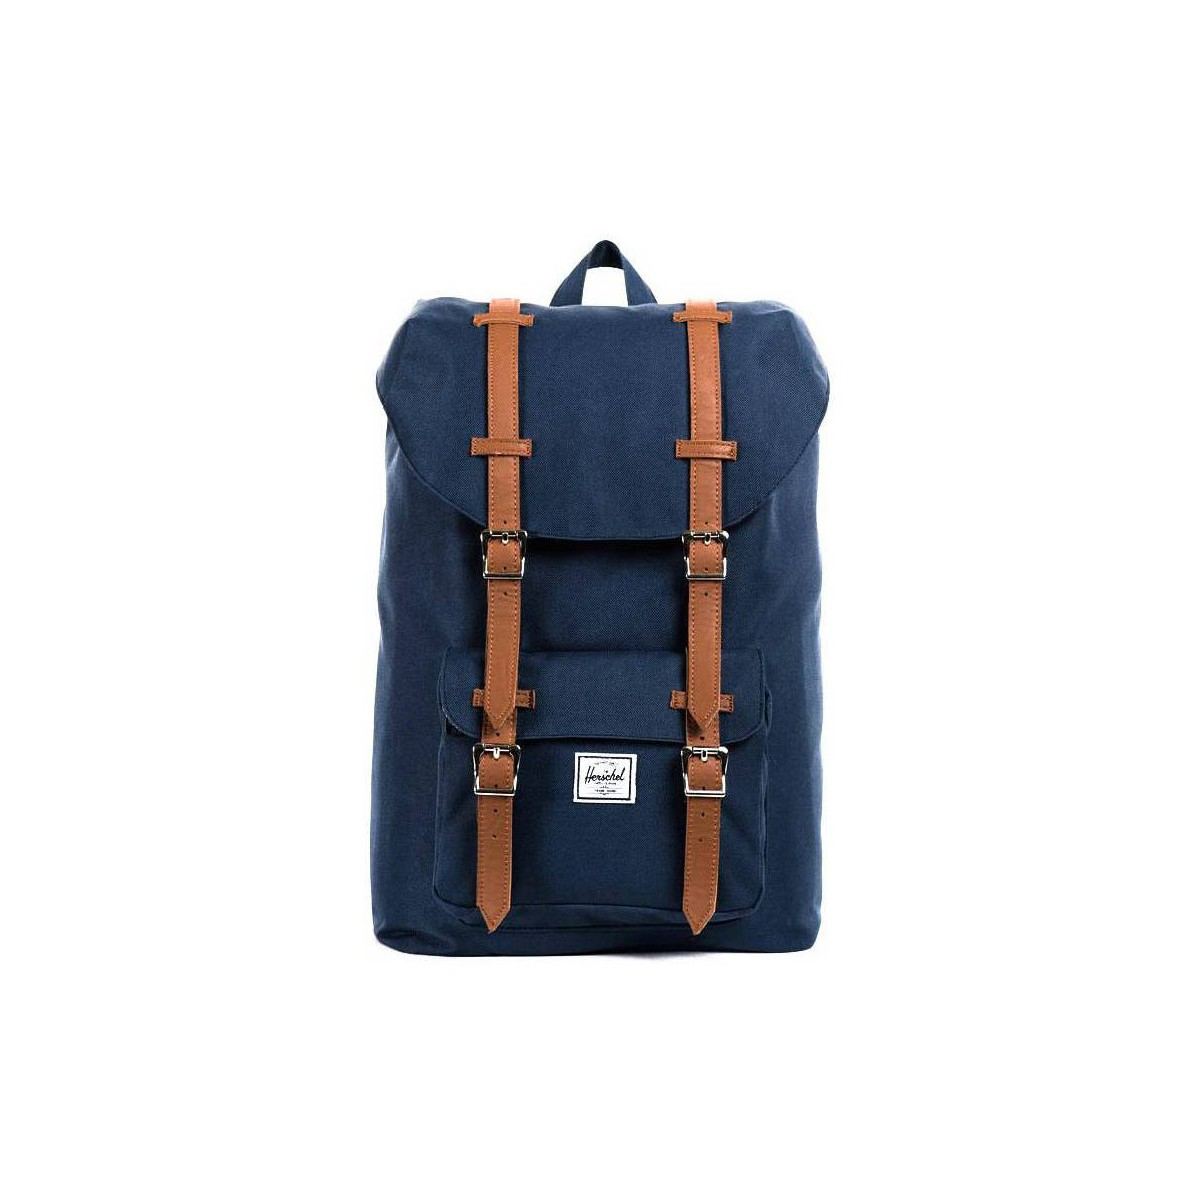 herschel herschel sac a dos little america mid volume navy bleu sacs sacs dos homme 109 00. Black Bedroom Furniture Sets. Home Design Ideas